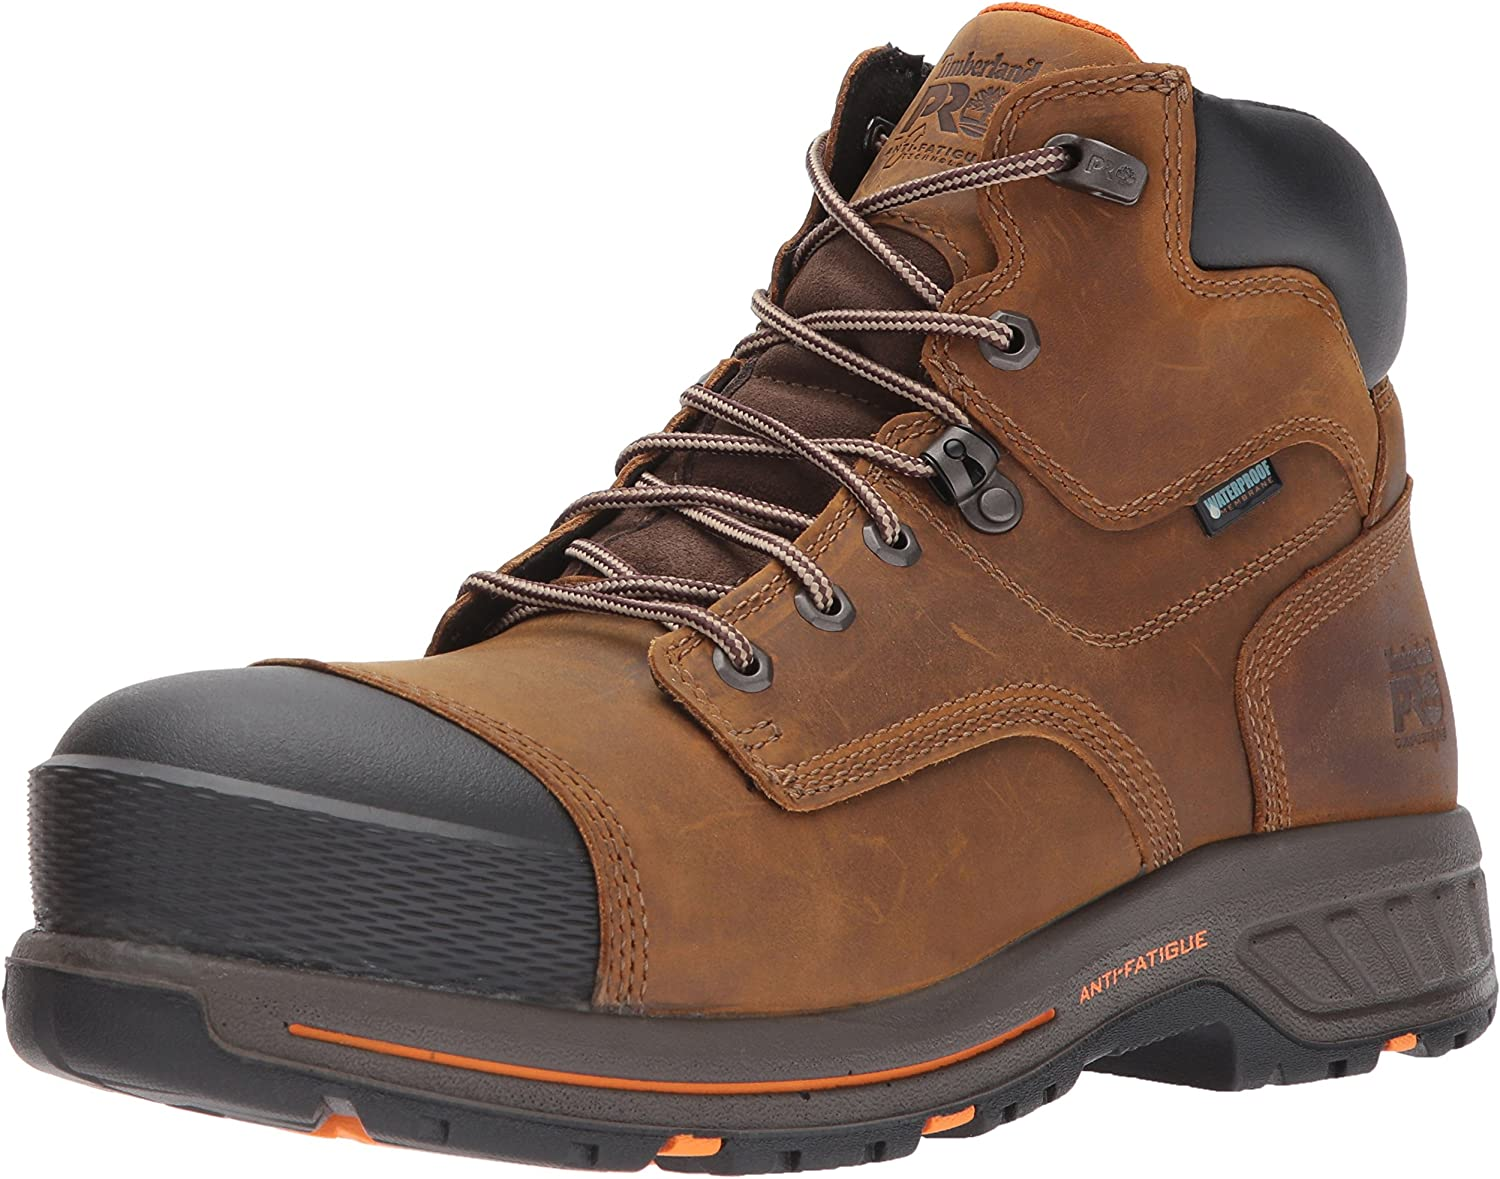 Timberland PRO Men's Helix HD 6 Inch Composite Safety Toe Waterproof Industrial & Construction Shoe, Distressed Brown Full Grain Leather, 11: Shoes